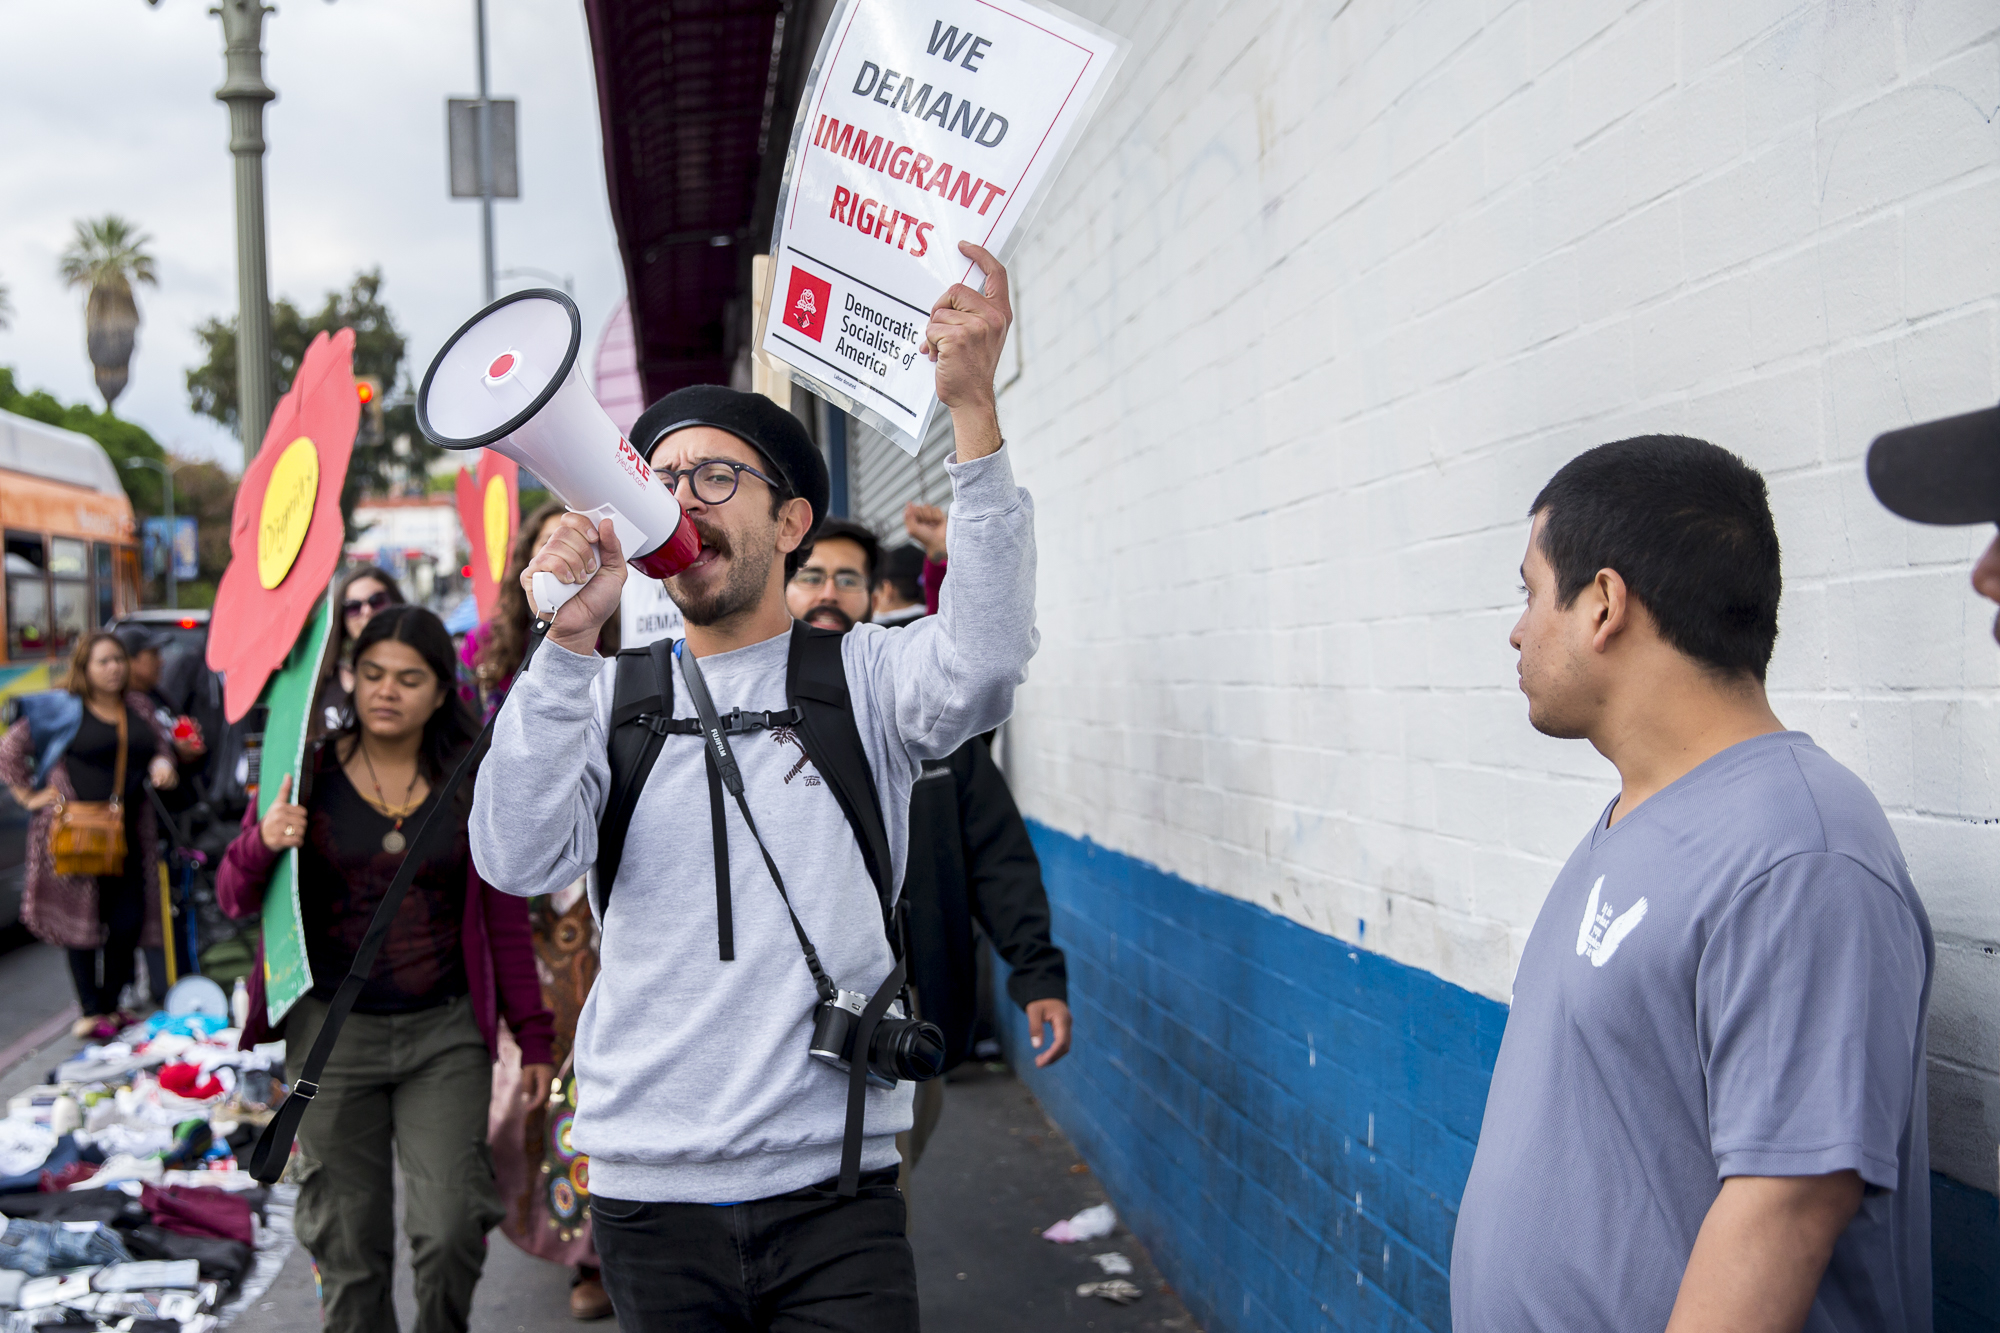 Movimiento Cosecha member Joseph Nicks leads the undocumented immigrant mother's march down Alvarado Street in downtown Los Angeles, California on Saturday, May 12 2018. The rally, organized by immigration advocacy group Movimiento Cosecha, called on the Trump administration to provide permanent protection for undocumented immigrants in the U.S. and to stop tearing mothers away from their children. (Matthew Martin/Corsair Photo)